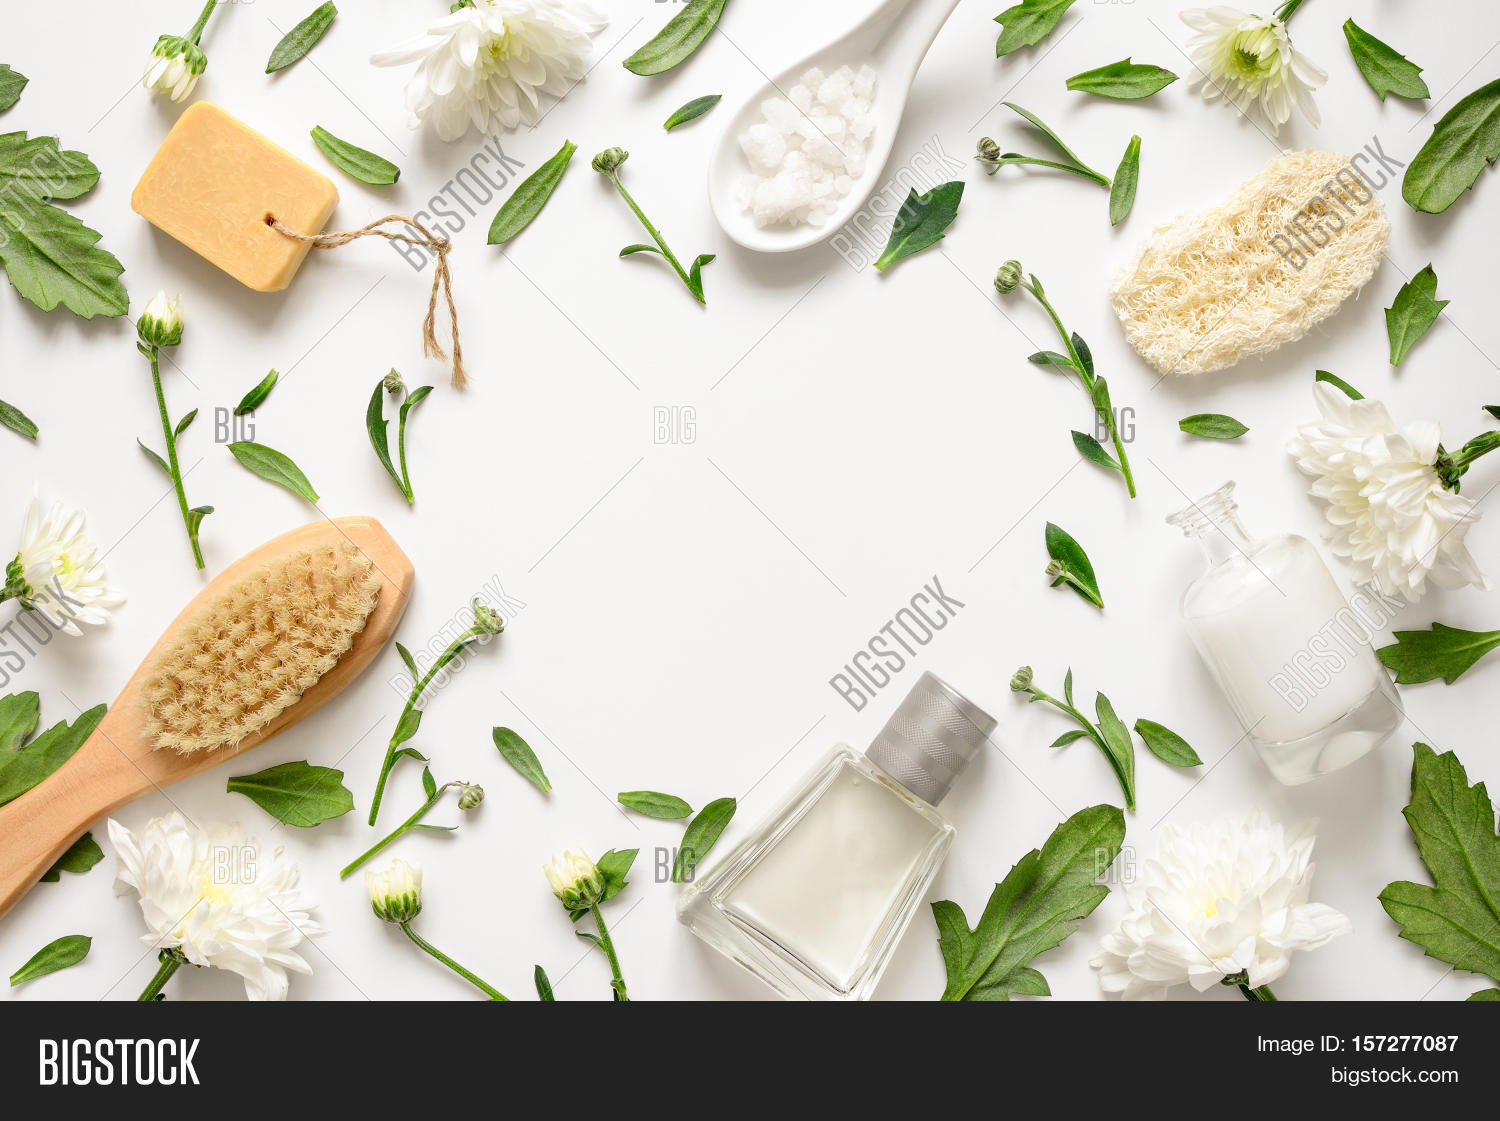 Spa Floral Background Image Photo Free Trial Bigstock